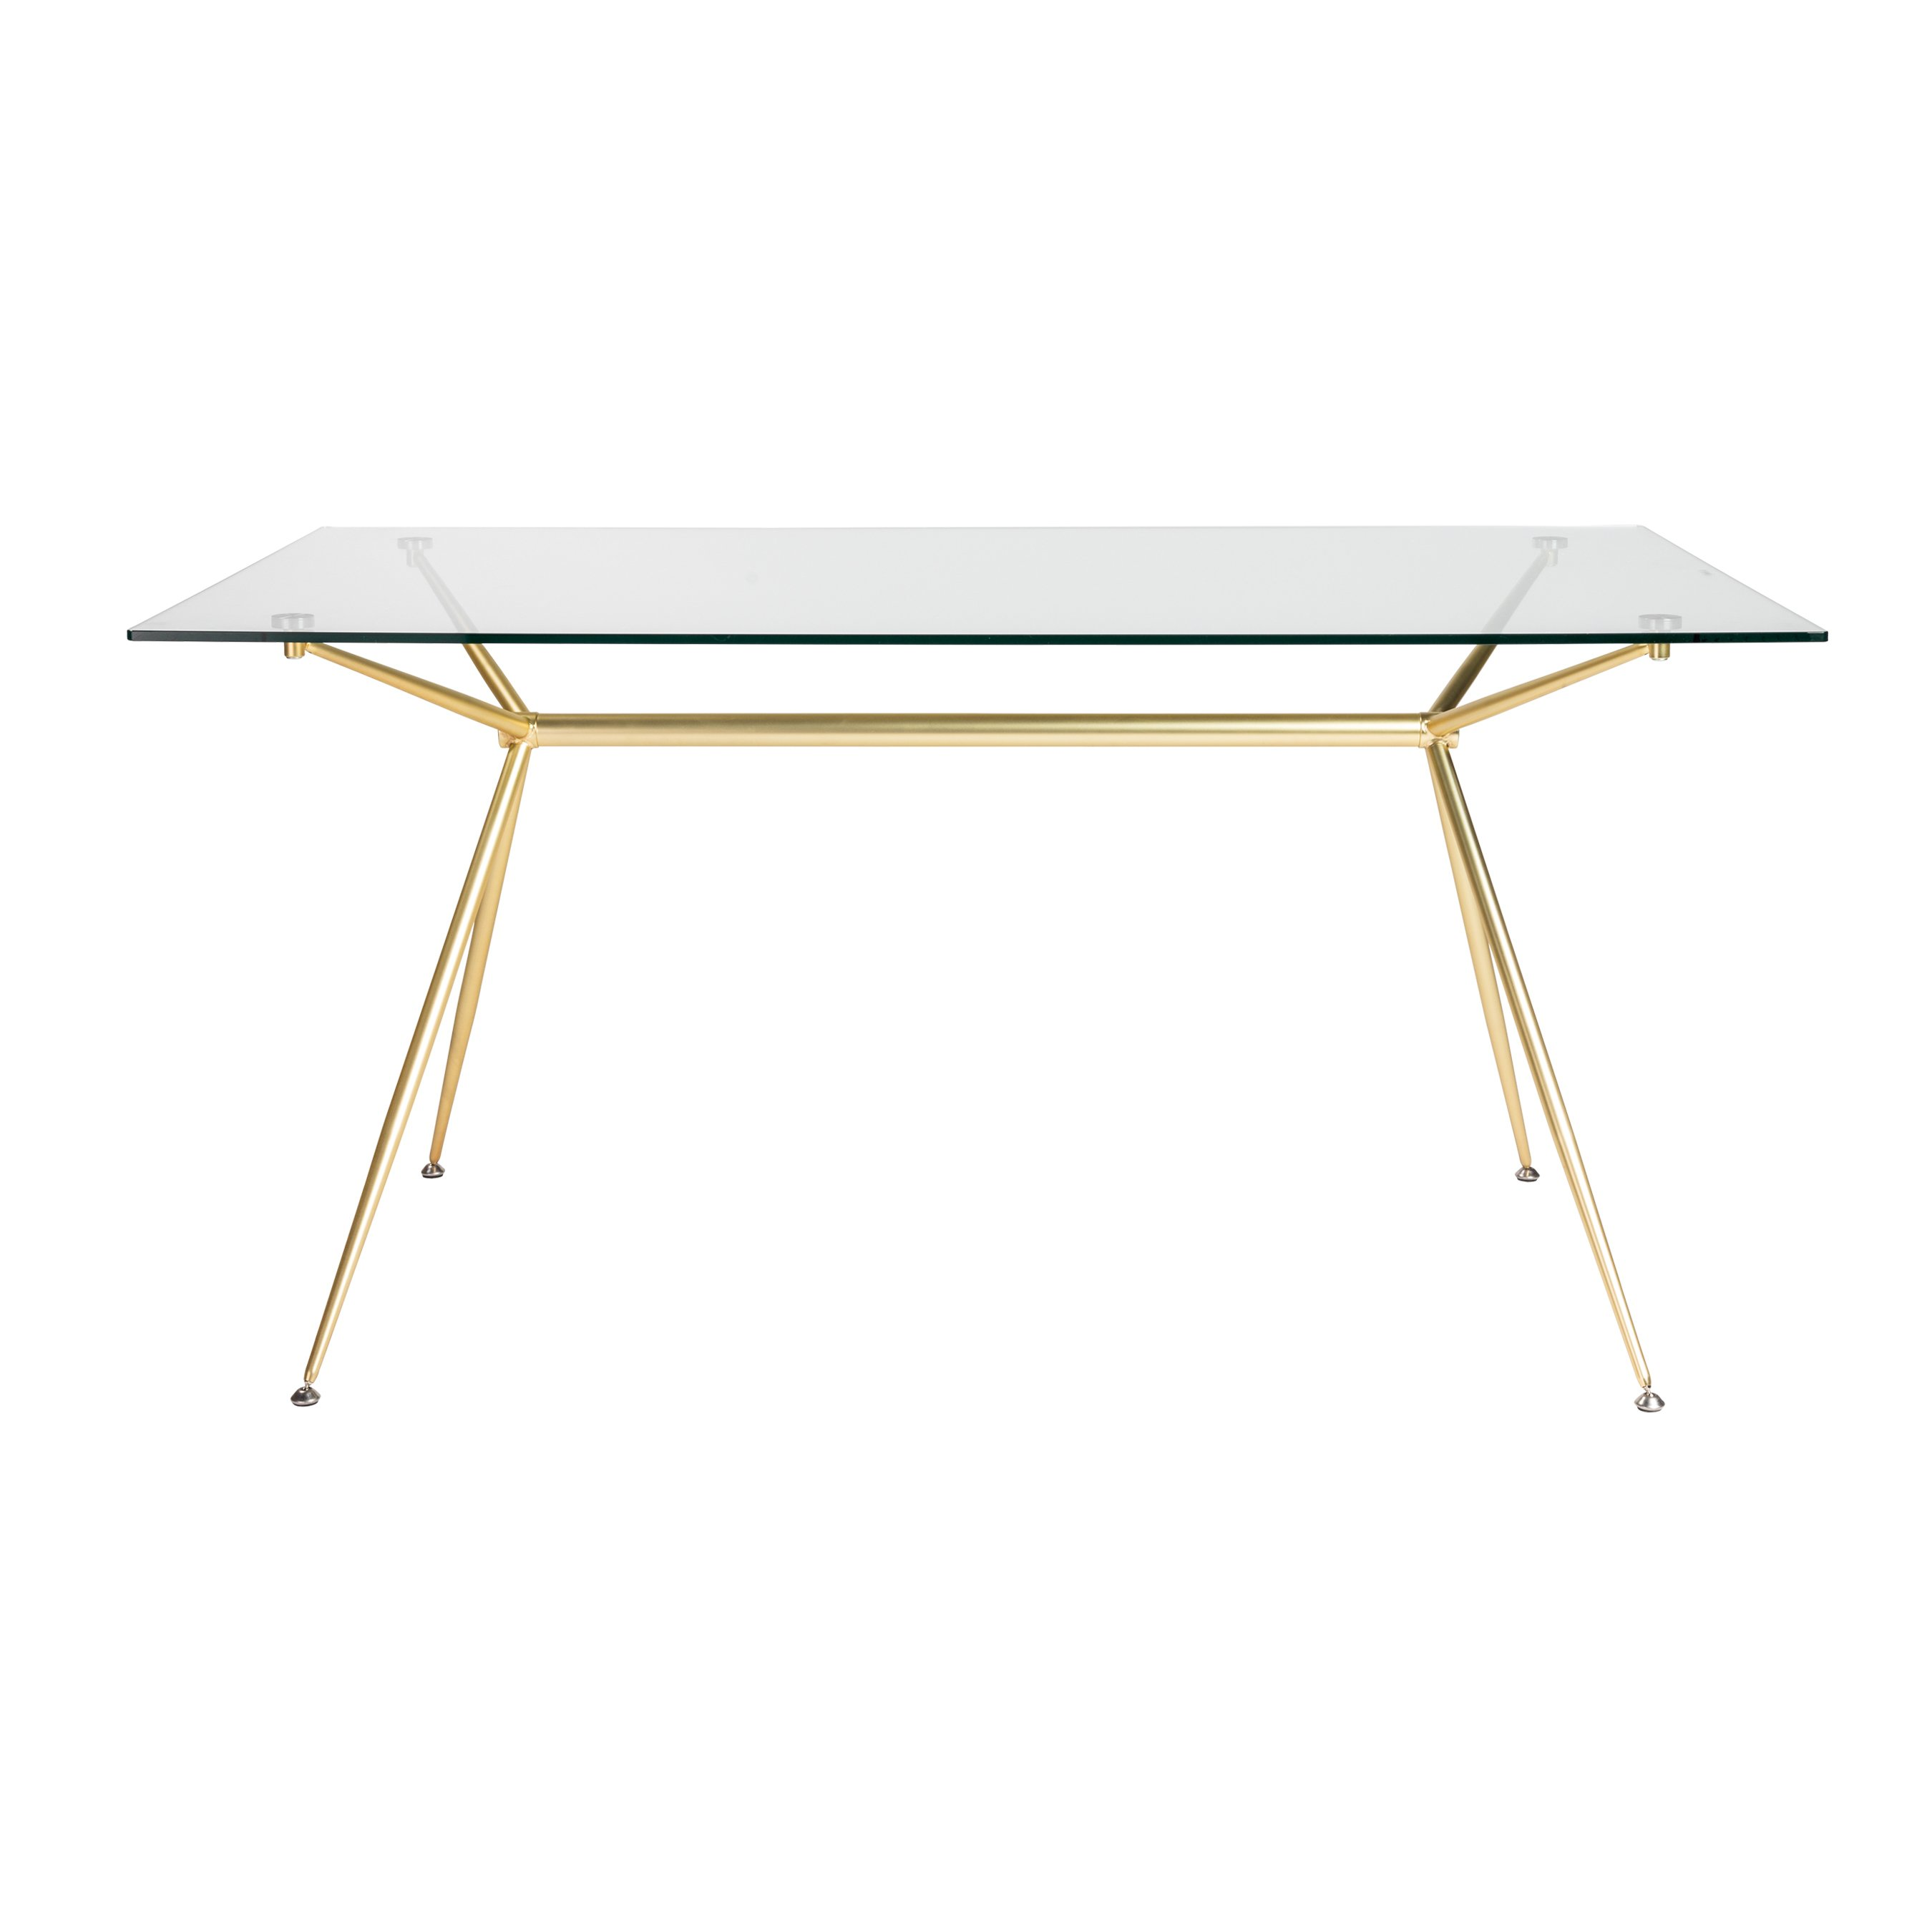 outdoor furniture auckland glass trestle table desk atos rectangle dining with clear tempered top and matte brushed gold base free shipping today strong folding wooden world